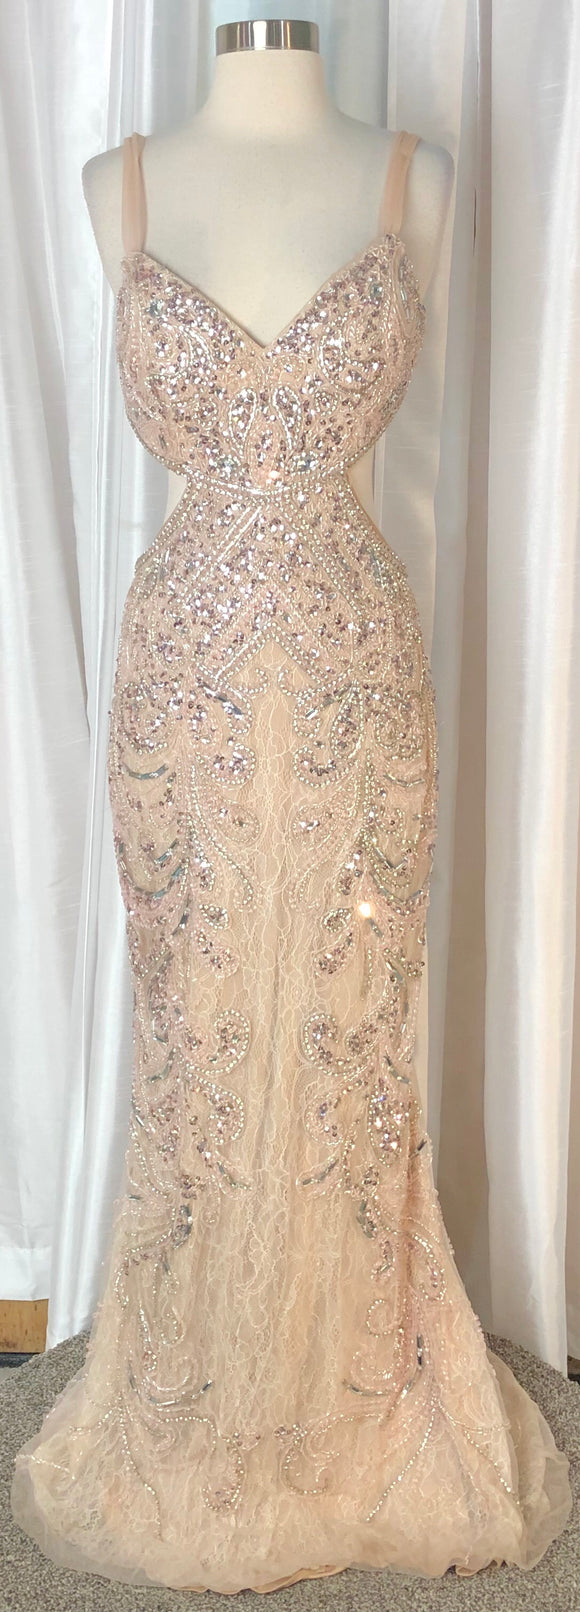 JASZ Couture Pale Pink Long Embellished Dress Size 8